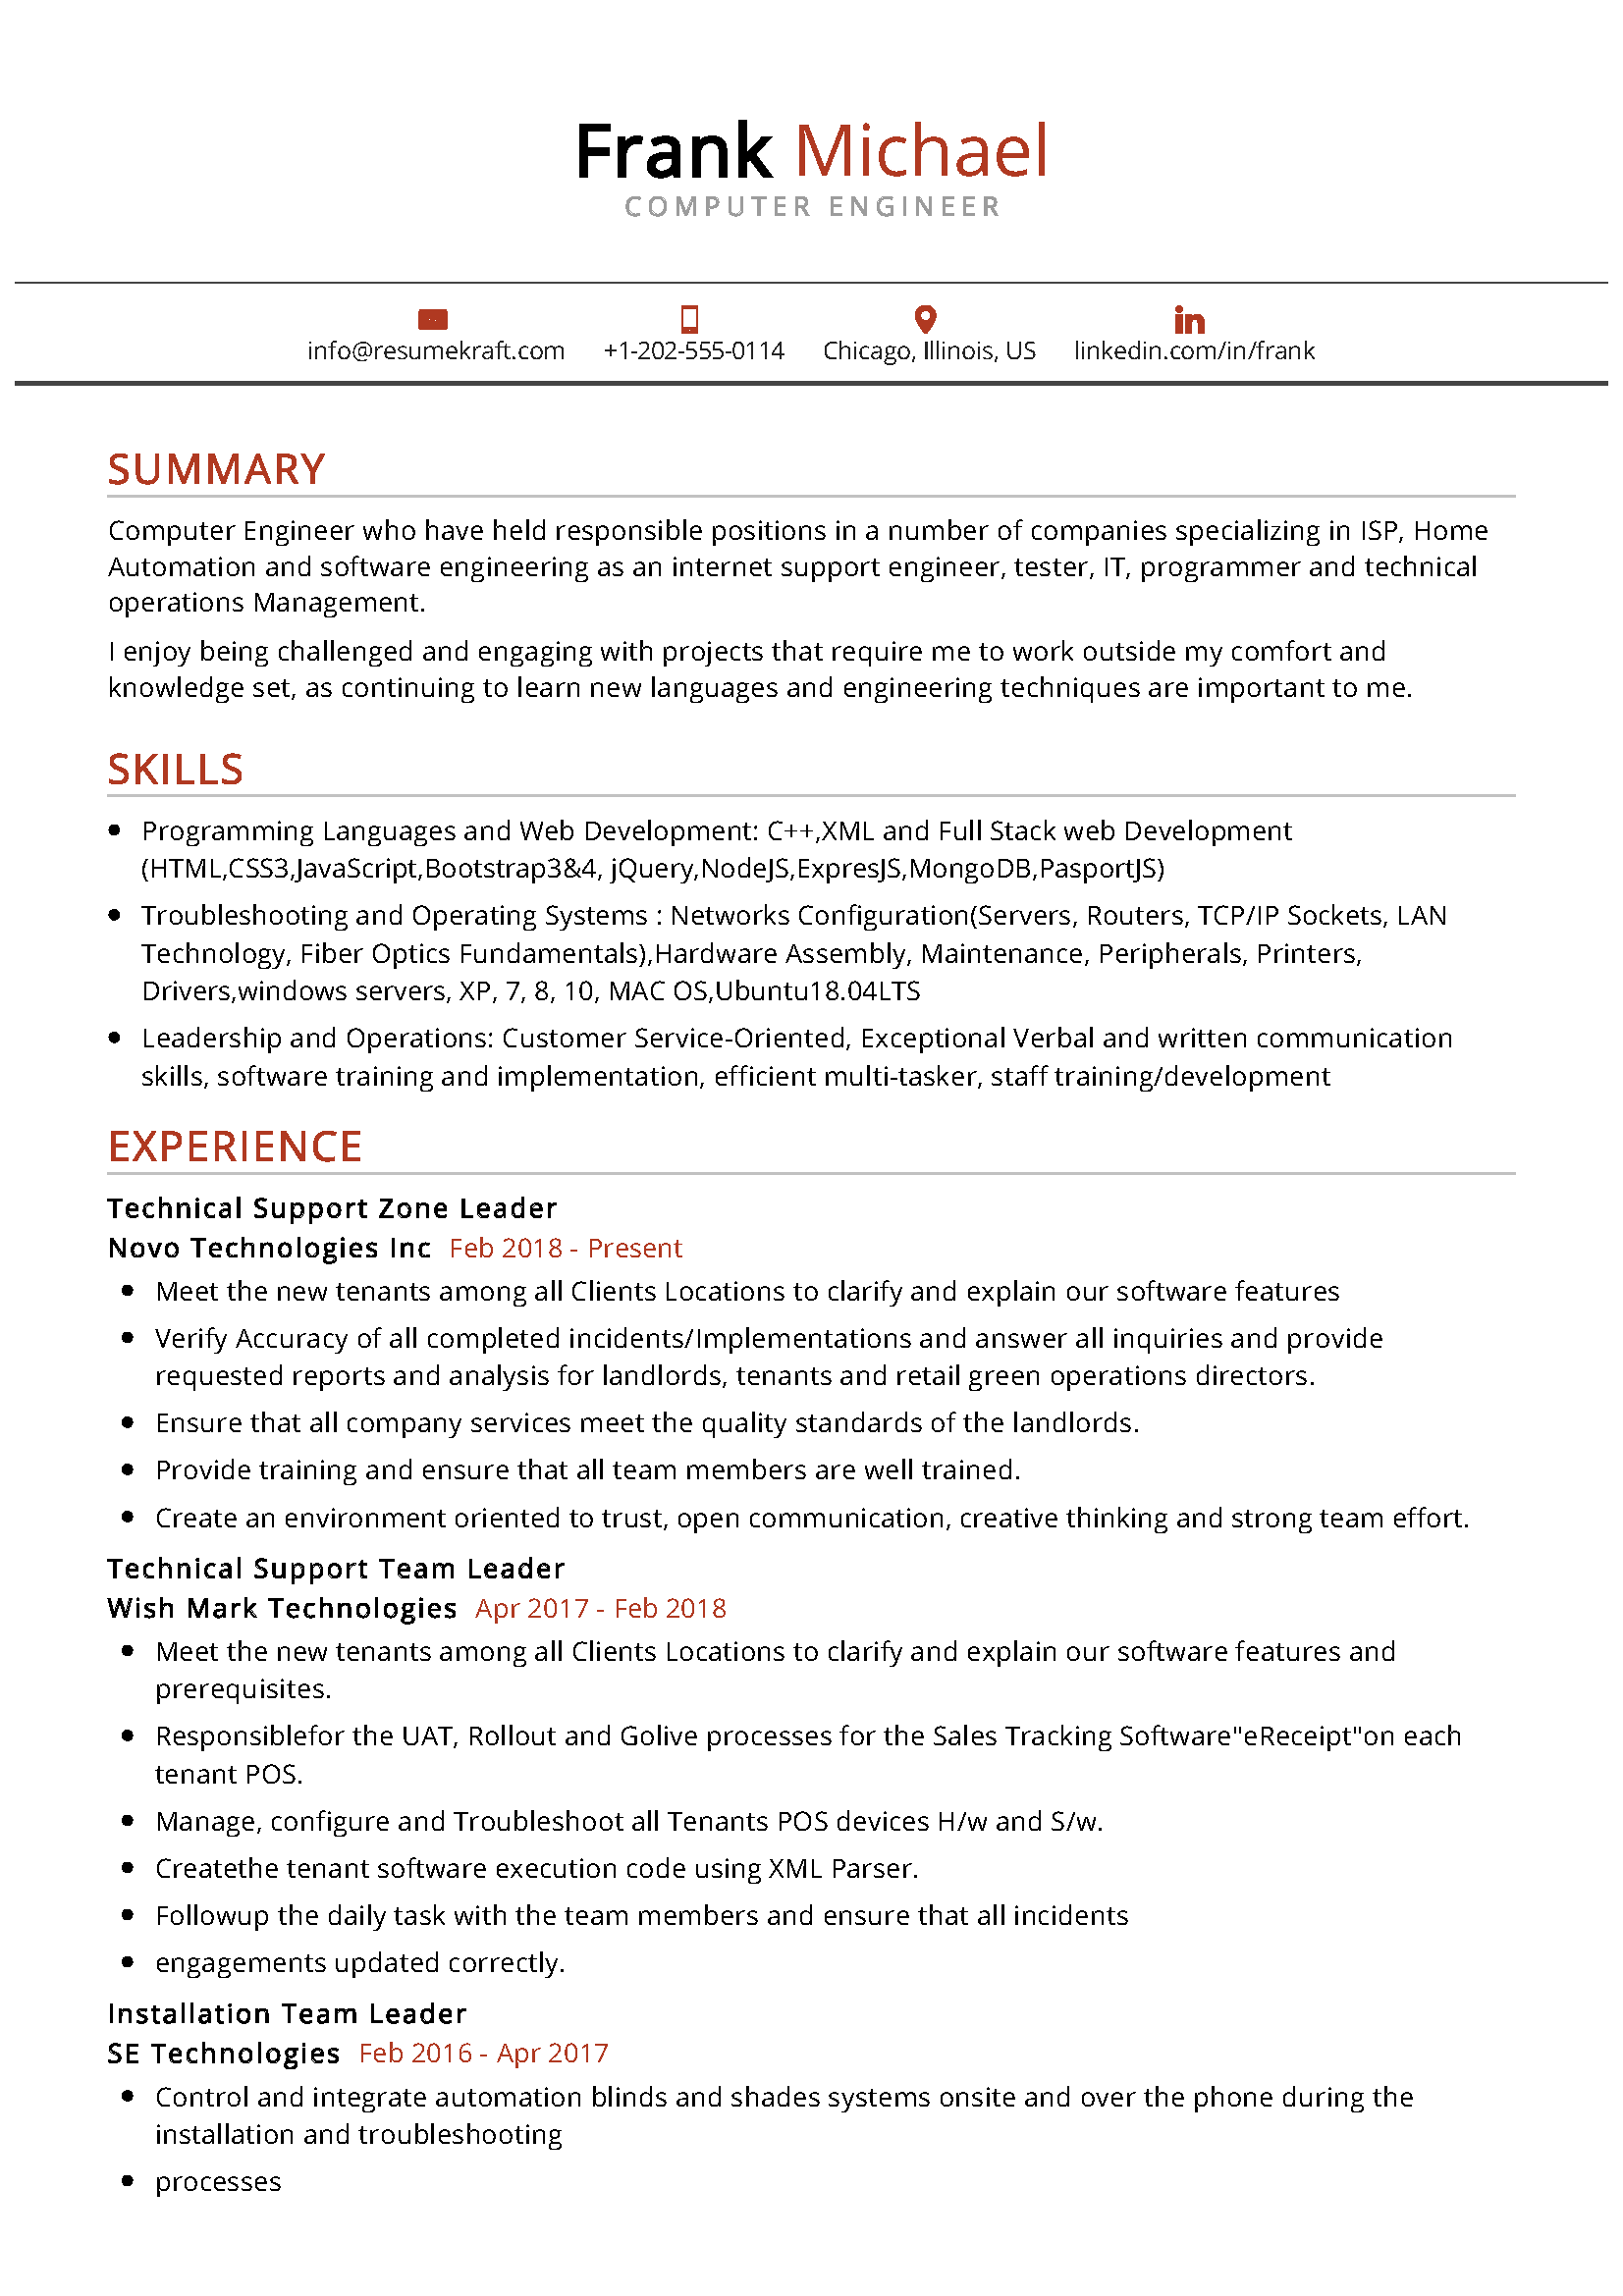 Computer Engineer Resume in 2020 Computer science